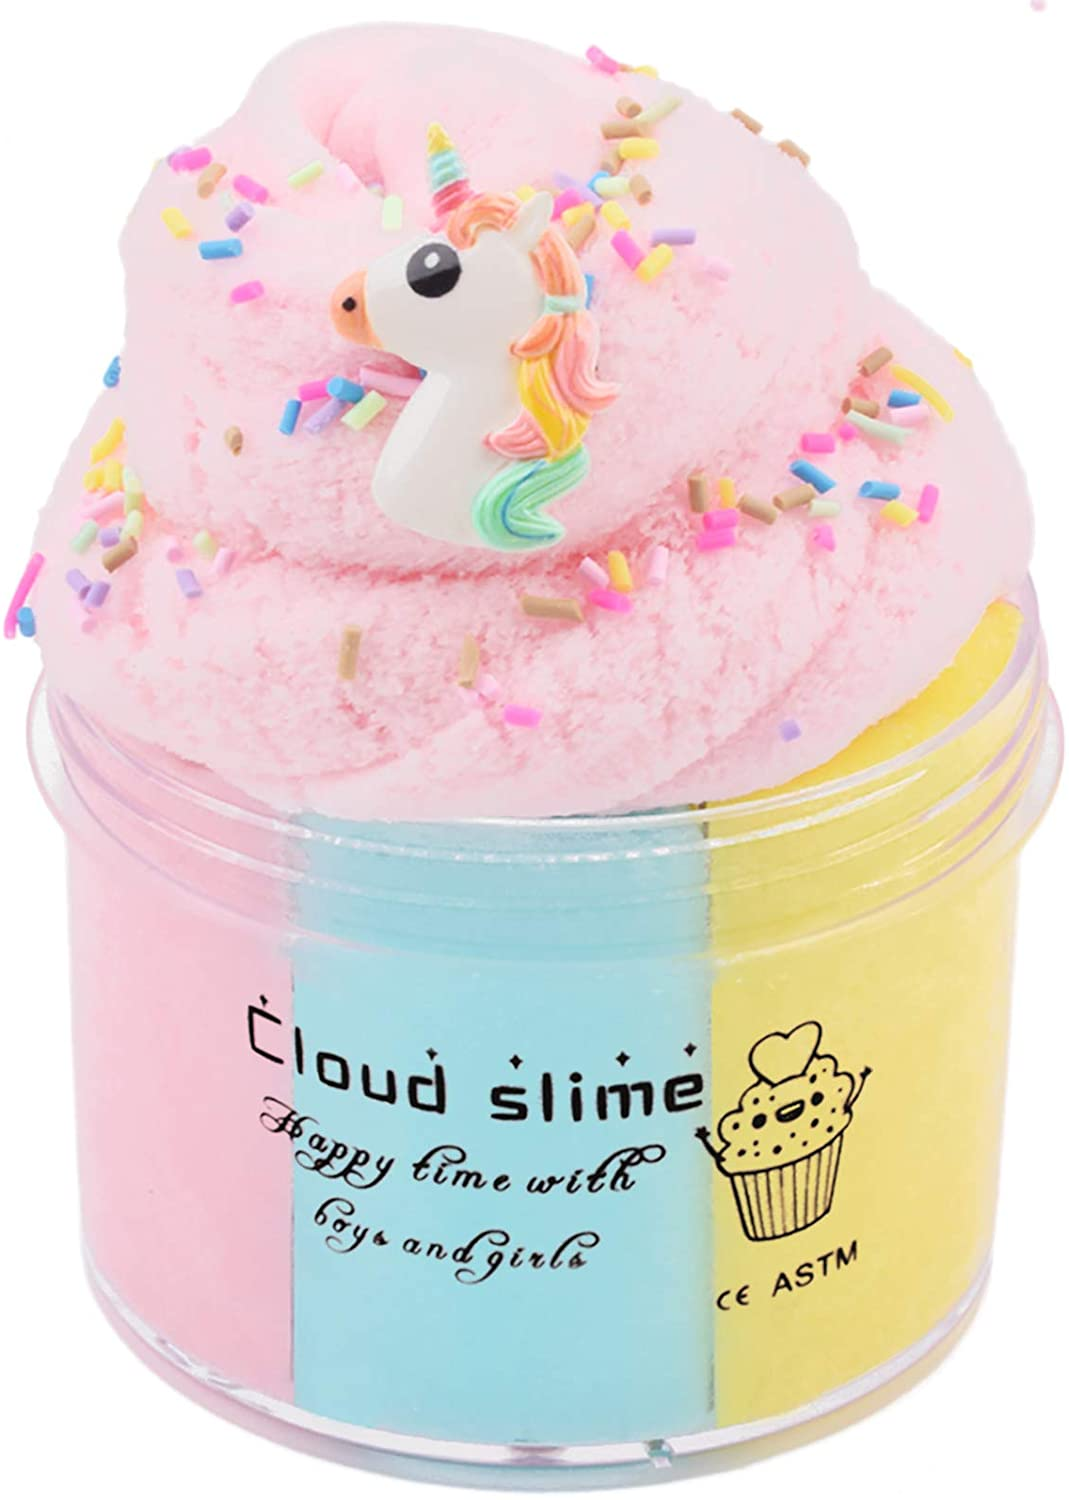 3 Colored Cloud Slime Scented Fluffy Floam Slime, Premade Slime Stretchy Candy Putty DIY Mud Sludge Toy Birthday Gifts Party Favor for Boy Girl (Multi 3 Colors)